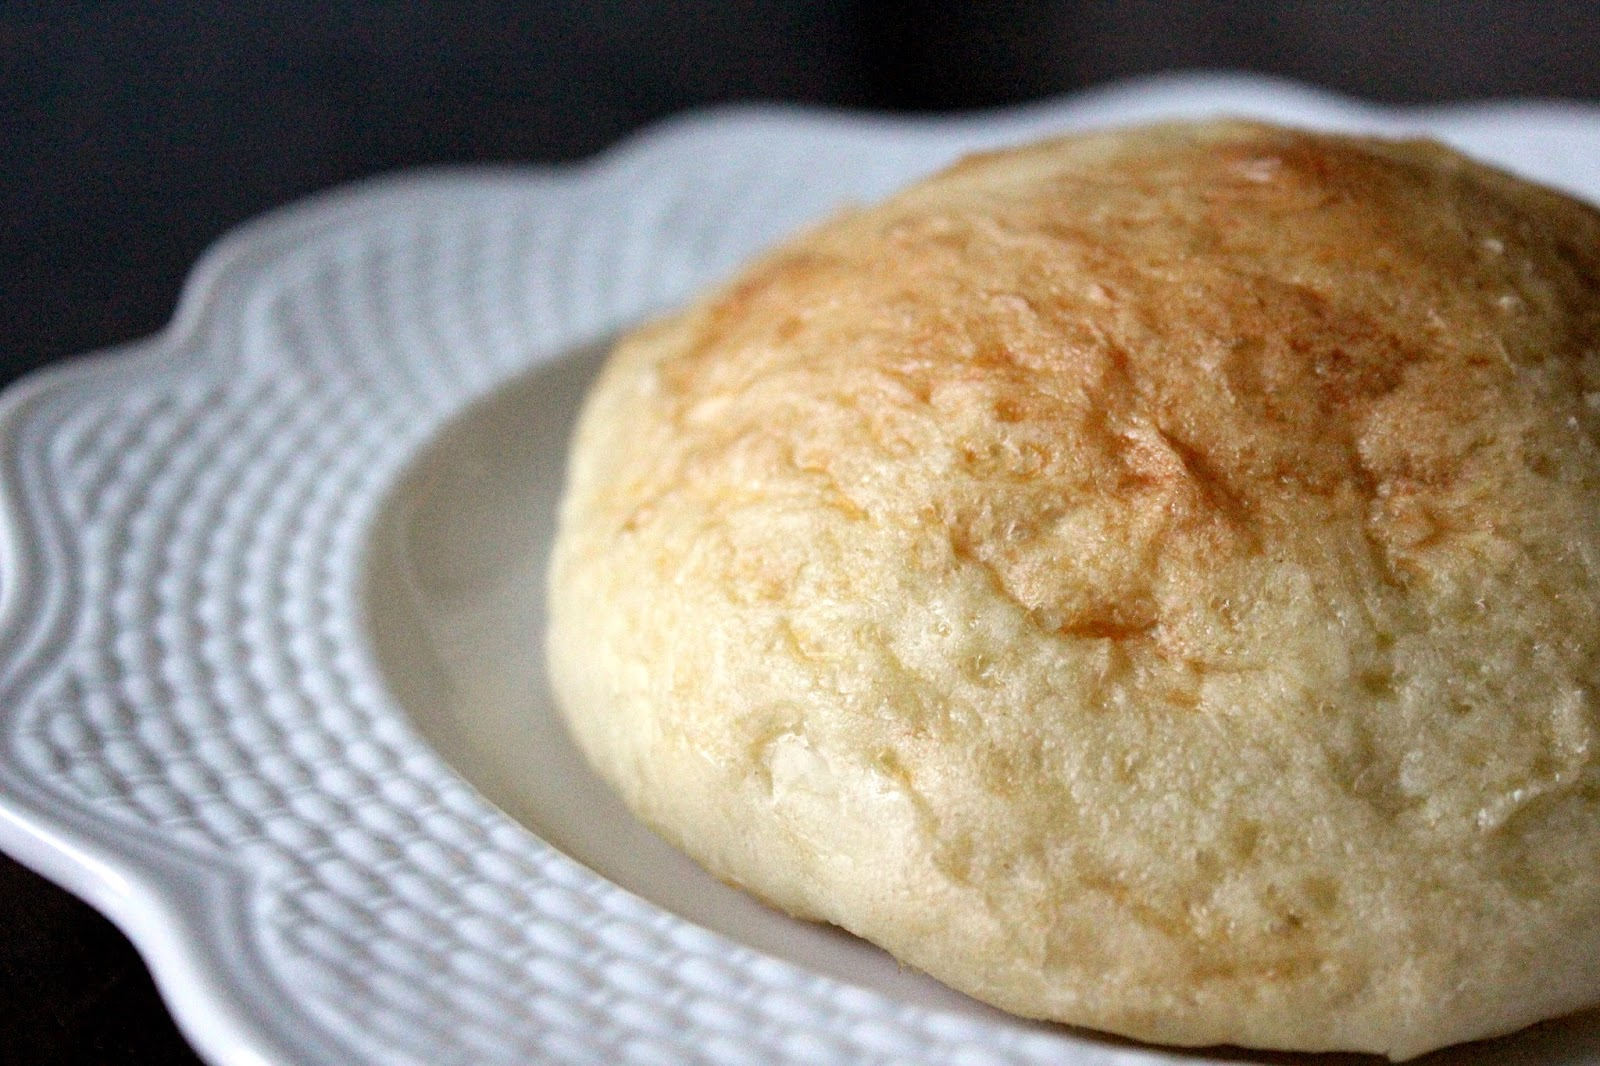 Recipe for Brioche Buns by freshfromthe.com